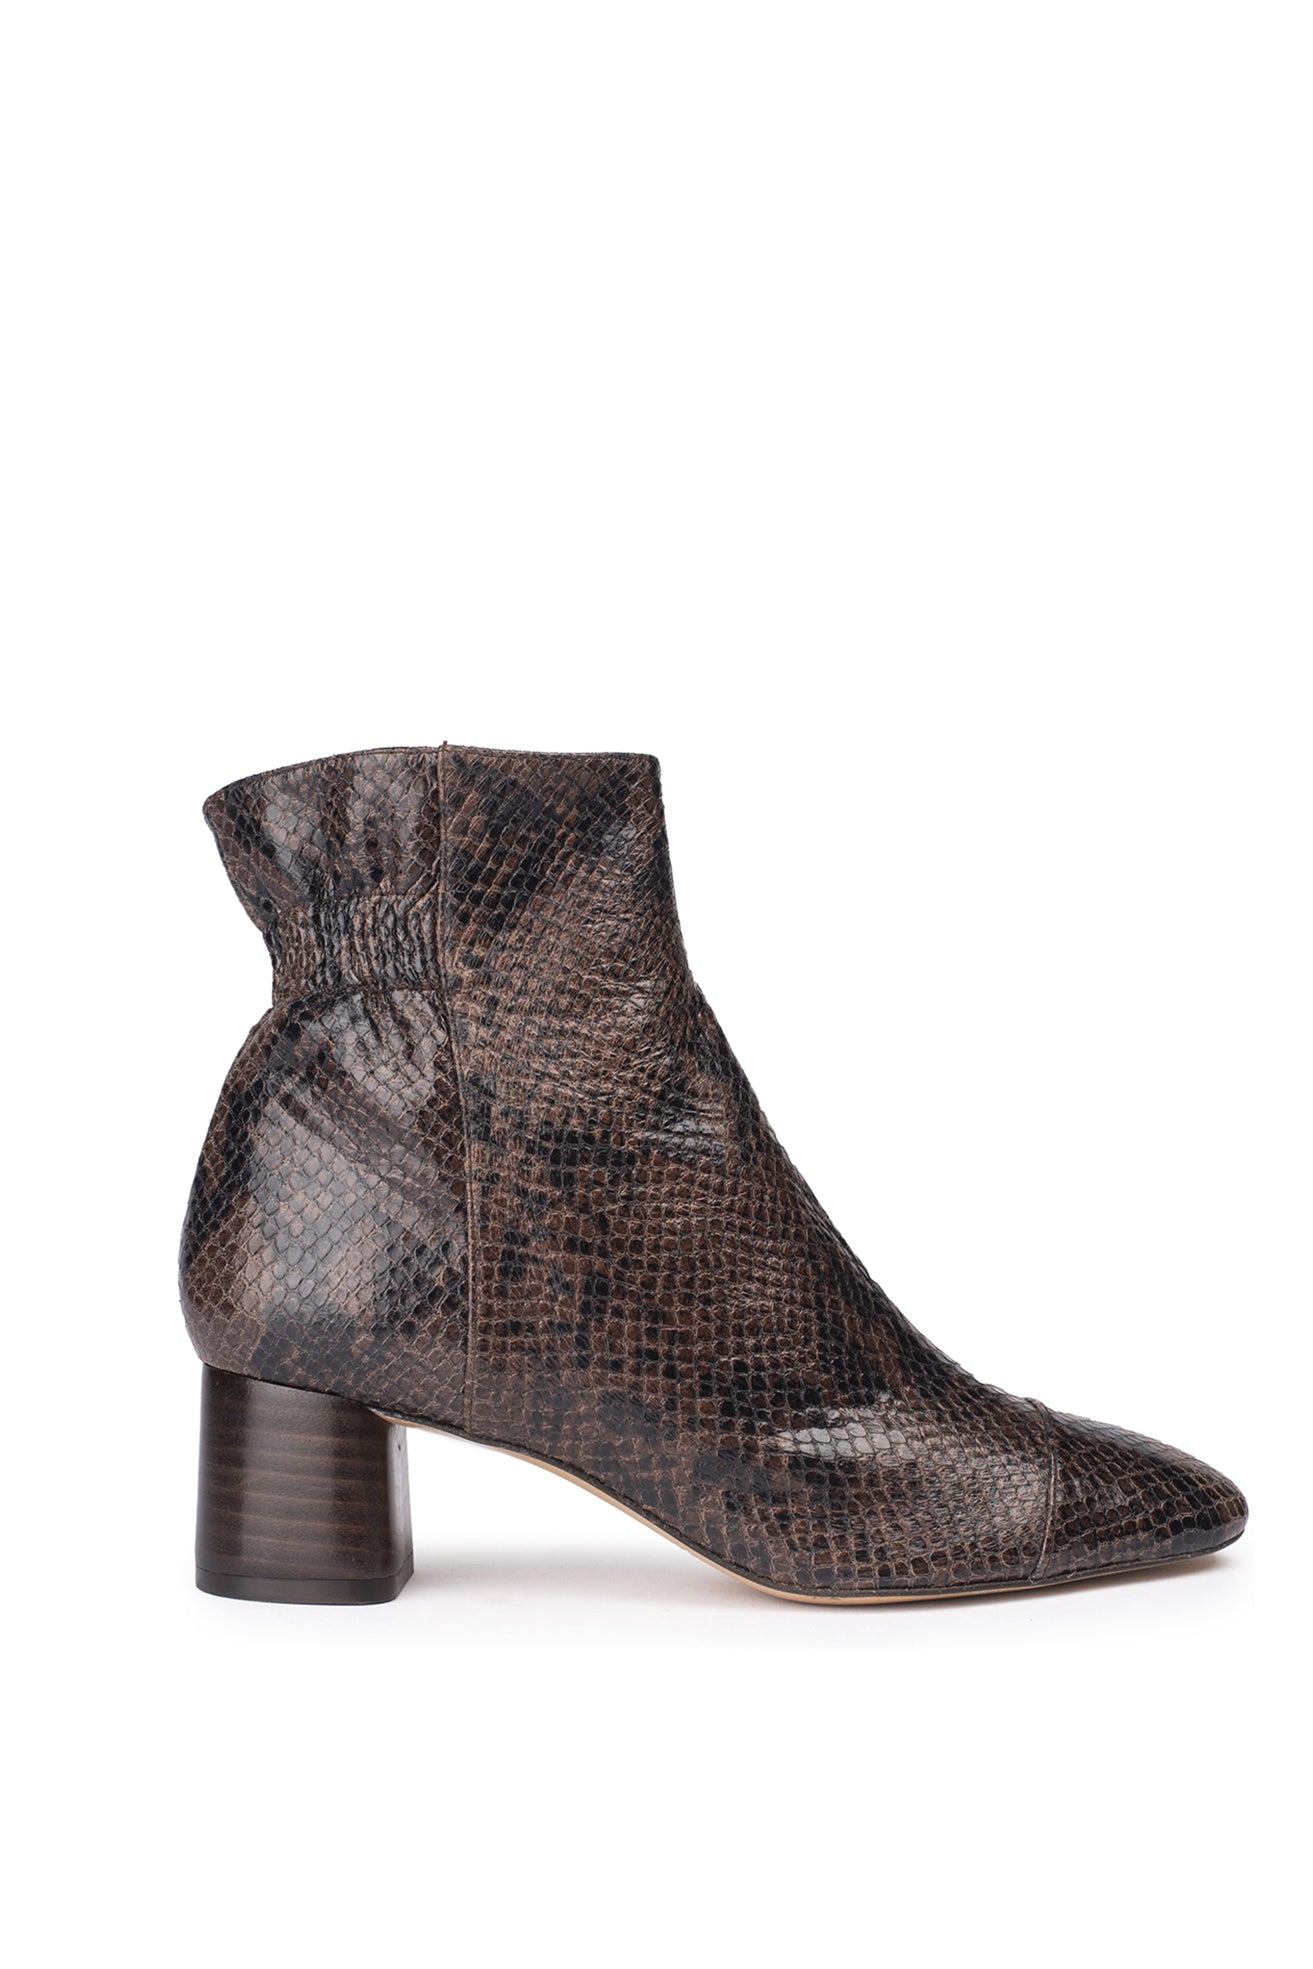 Bottines Pippa Python Marron - Anaki Paris